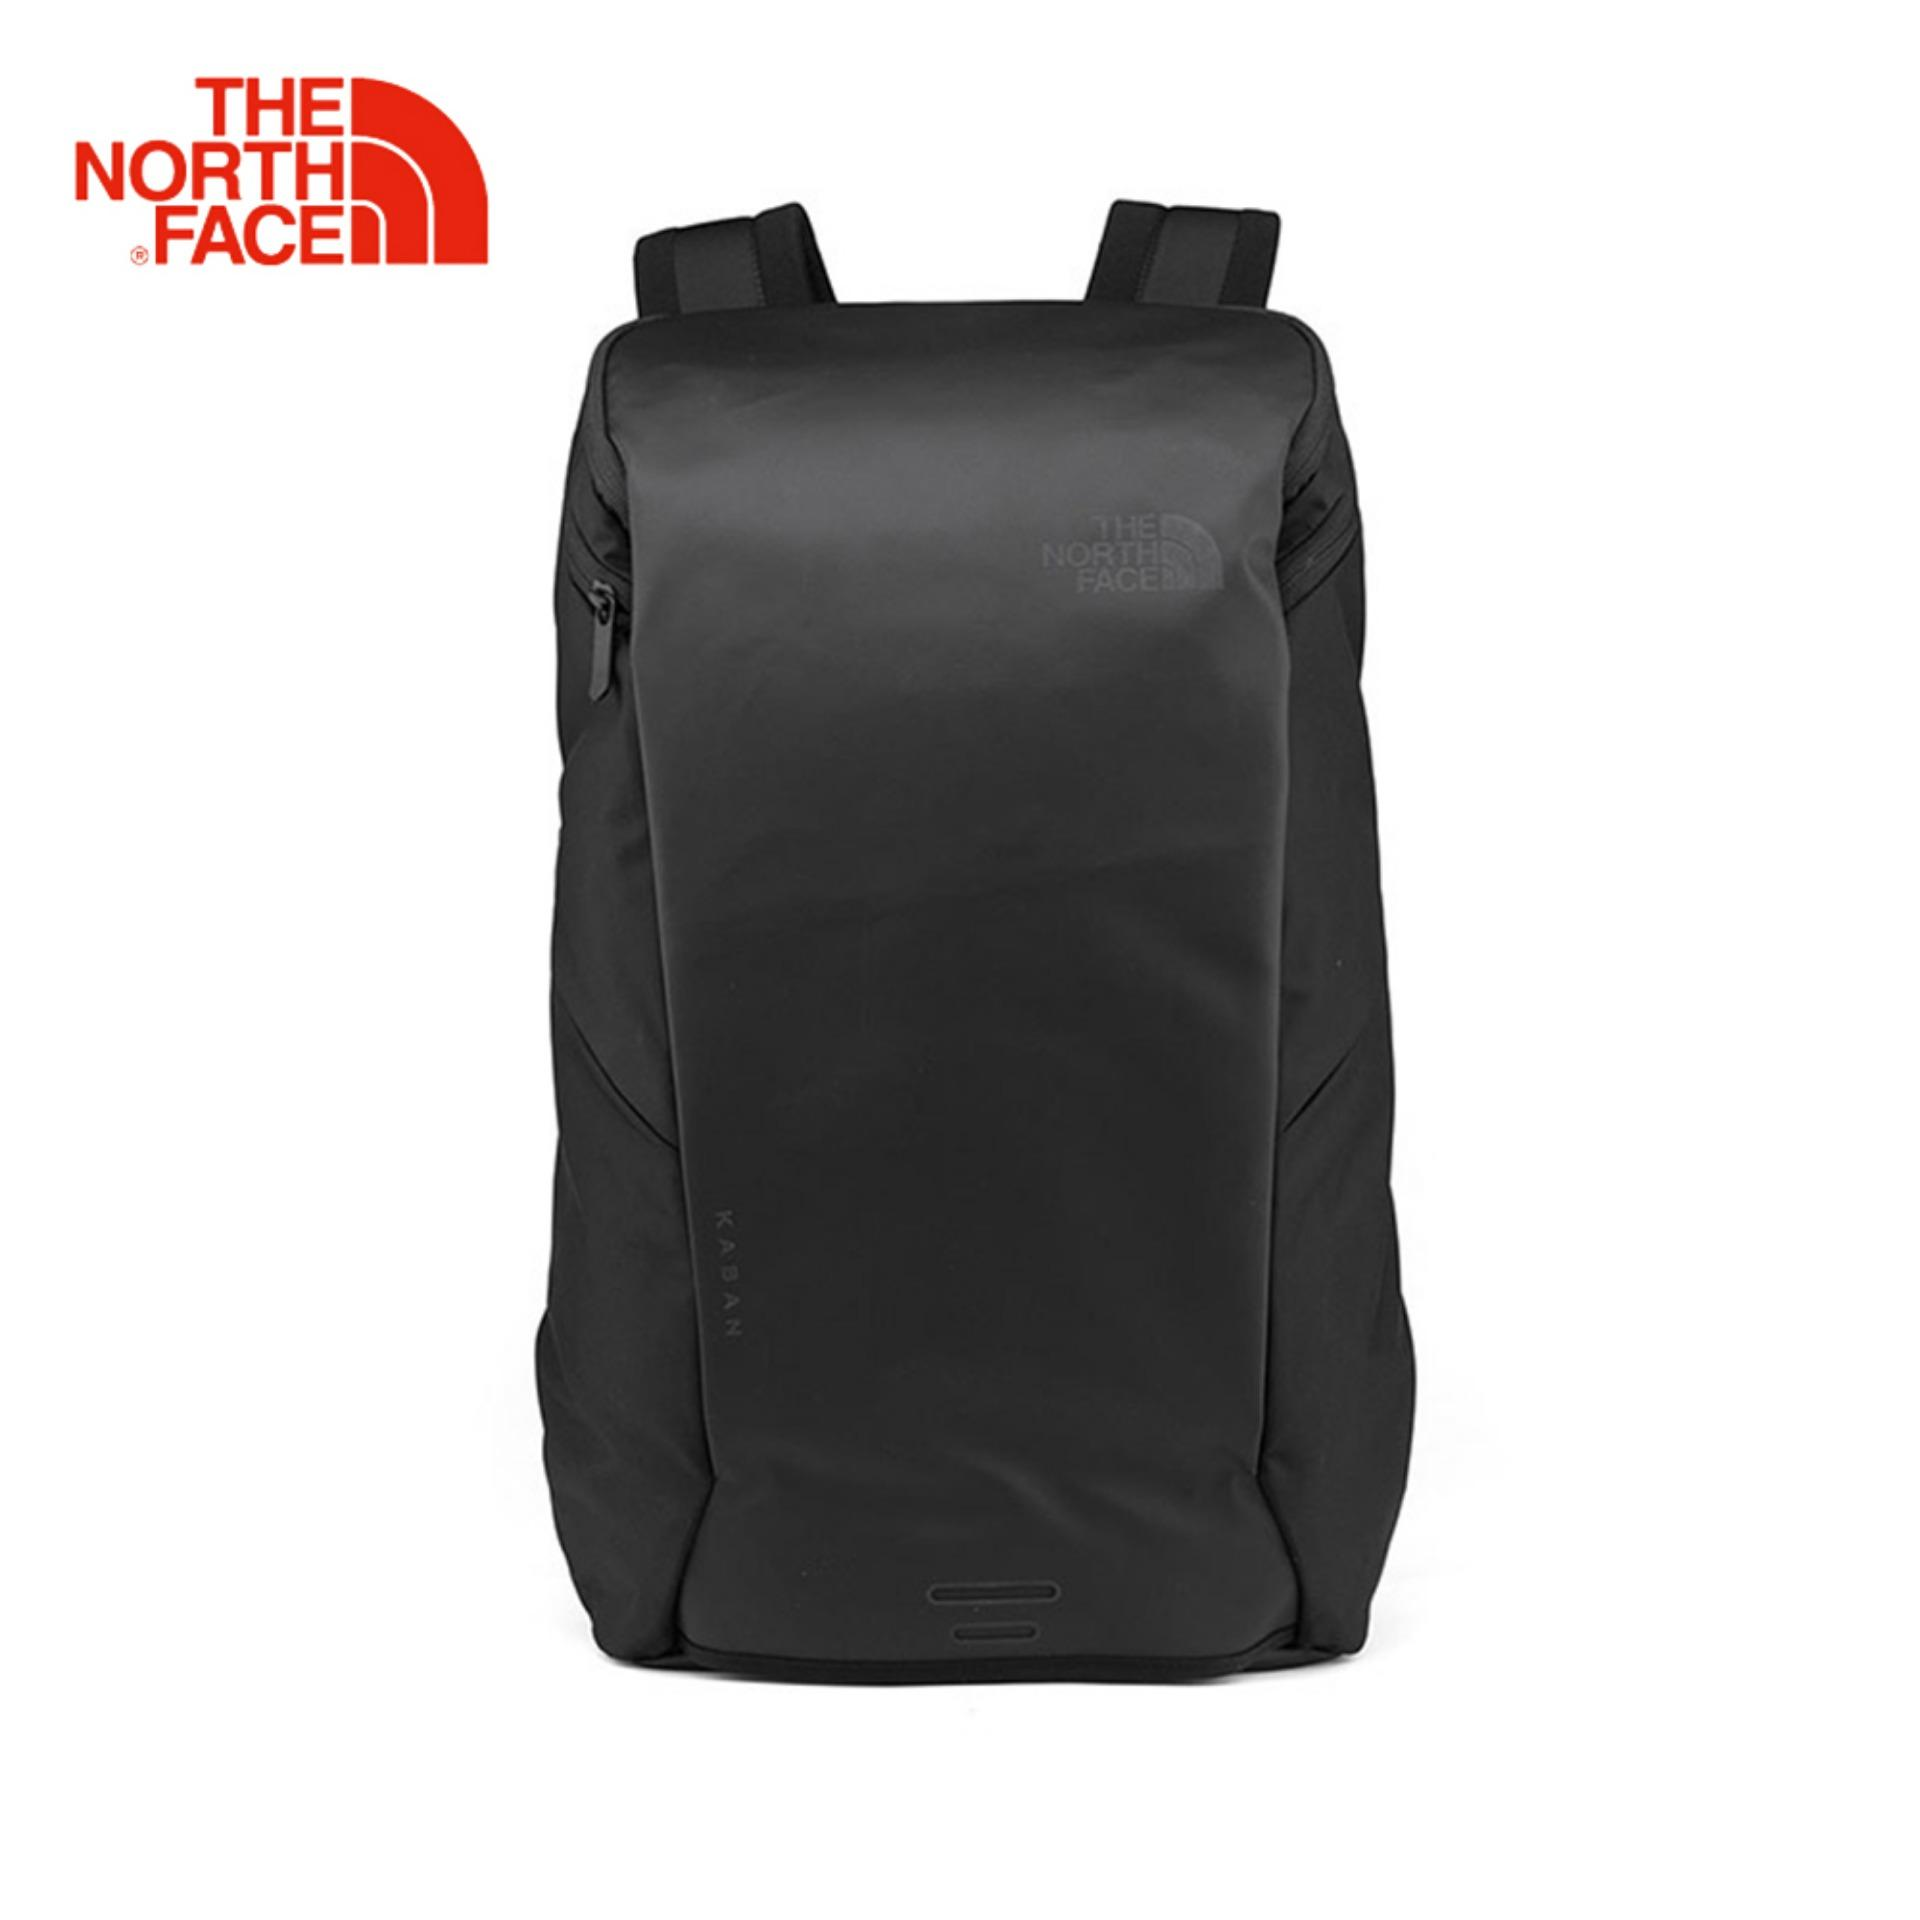 13a49cb05 The North Face Kaban 26L Comfortable Padded FlexVent™ Laptop Tablet  Reflective Backpack